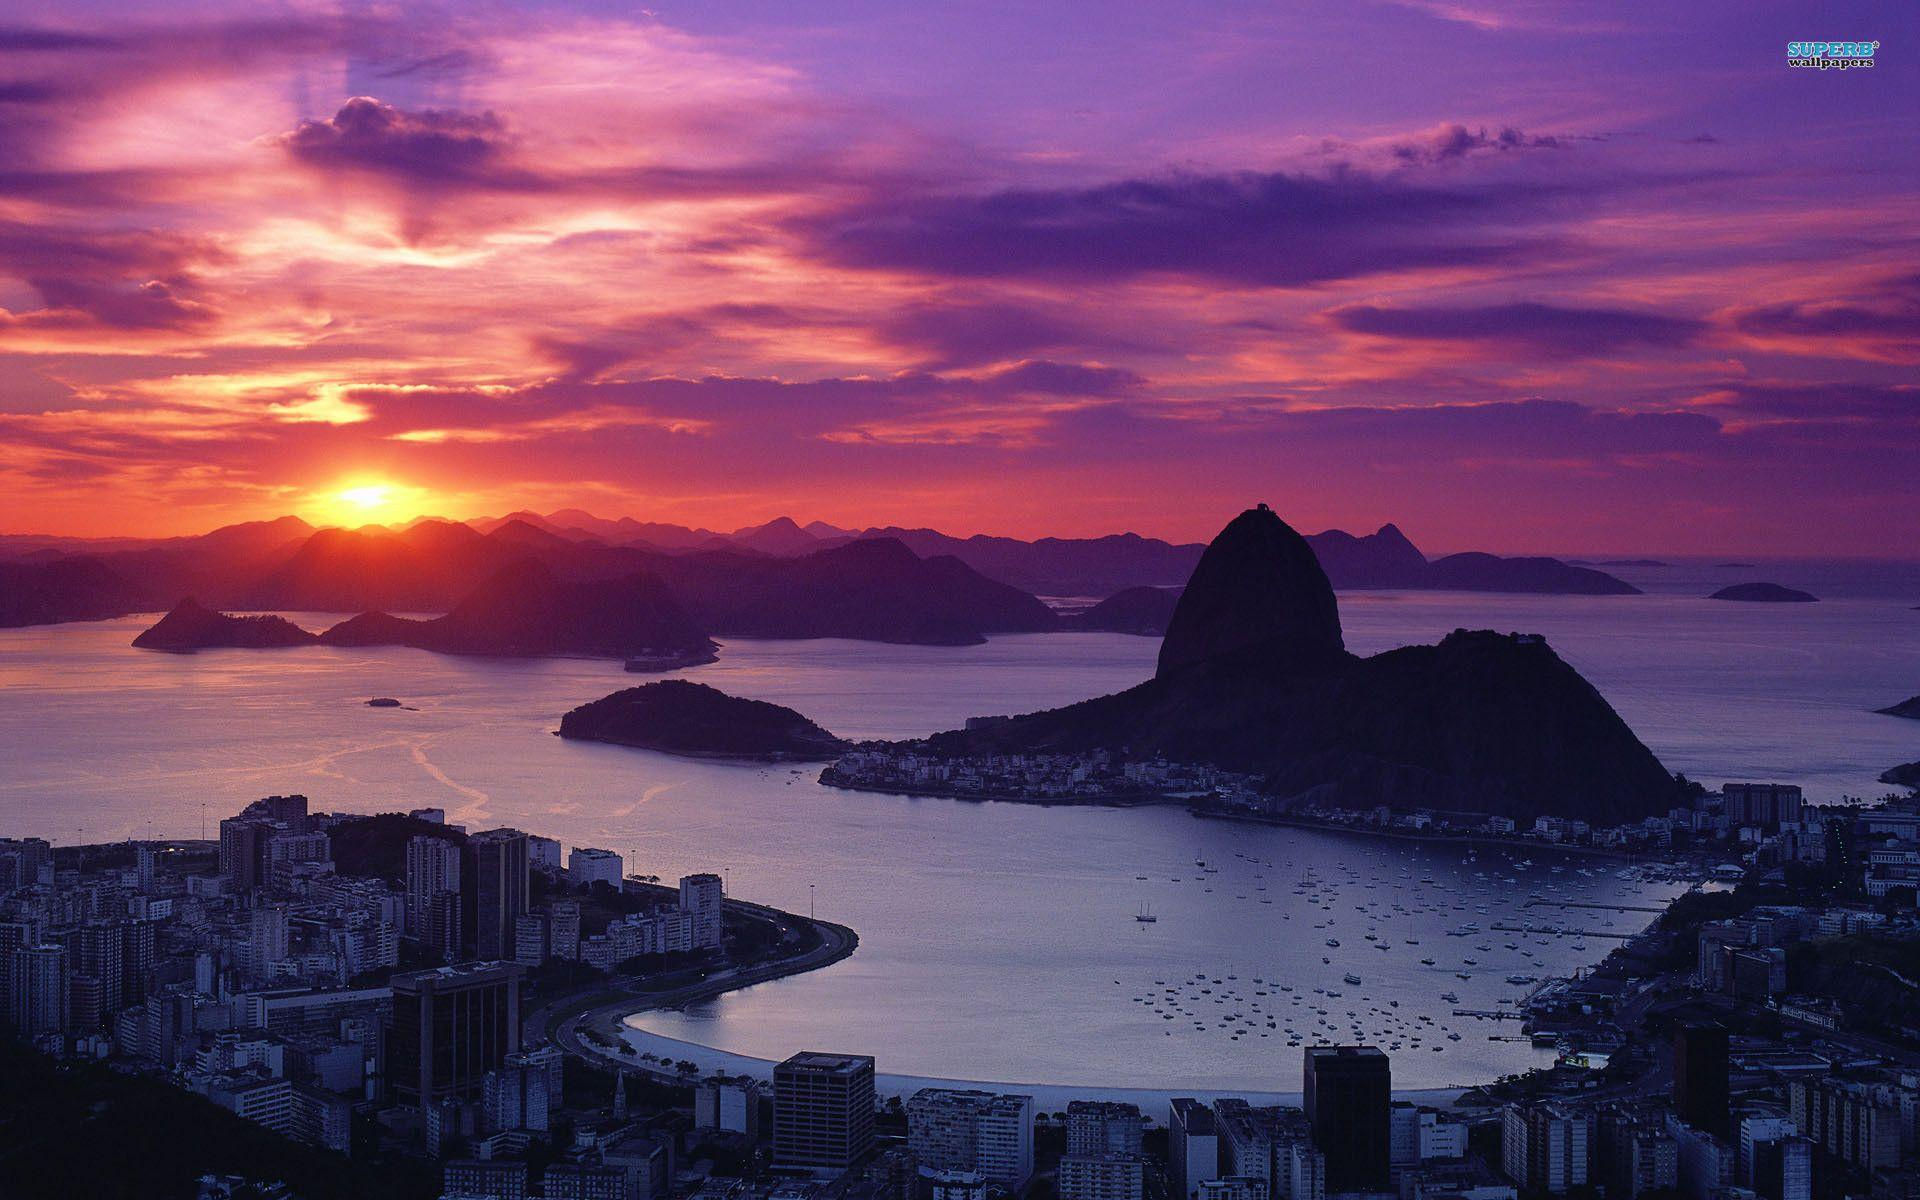 rio wallpaper - photo #22